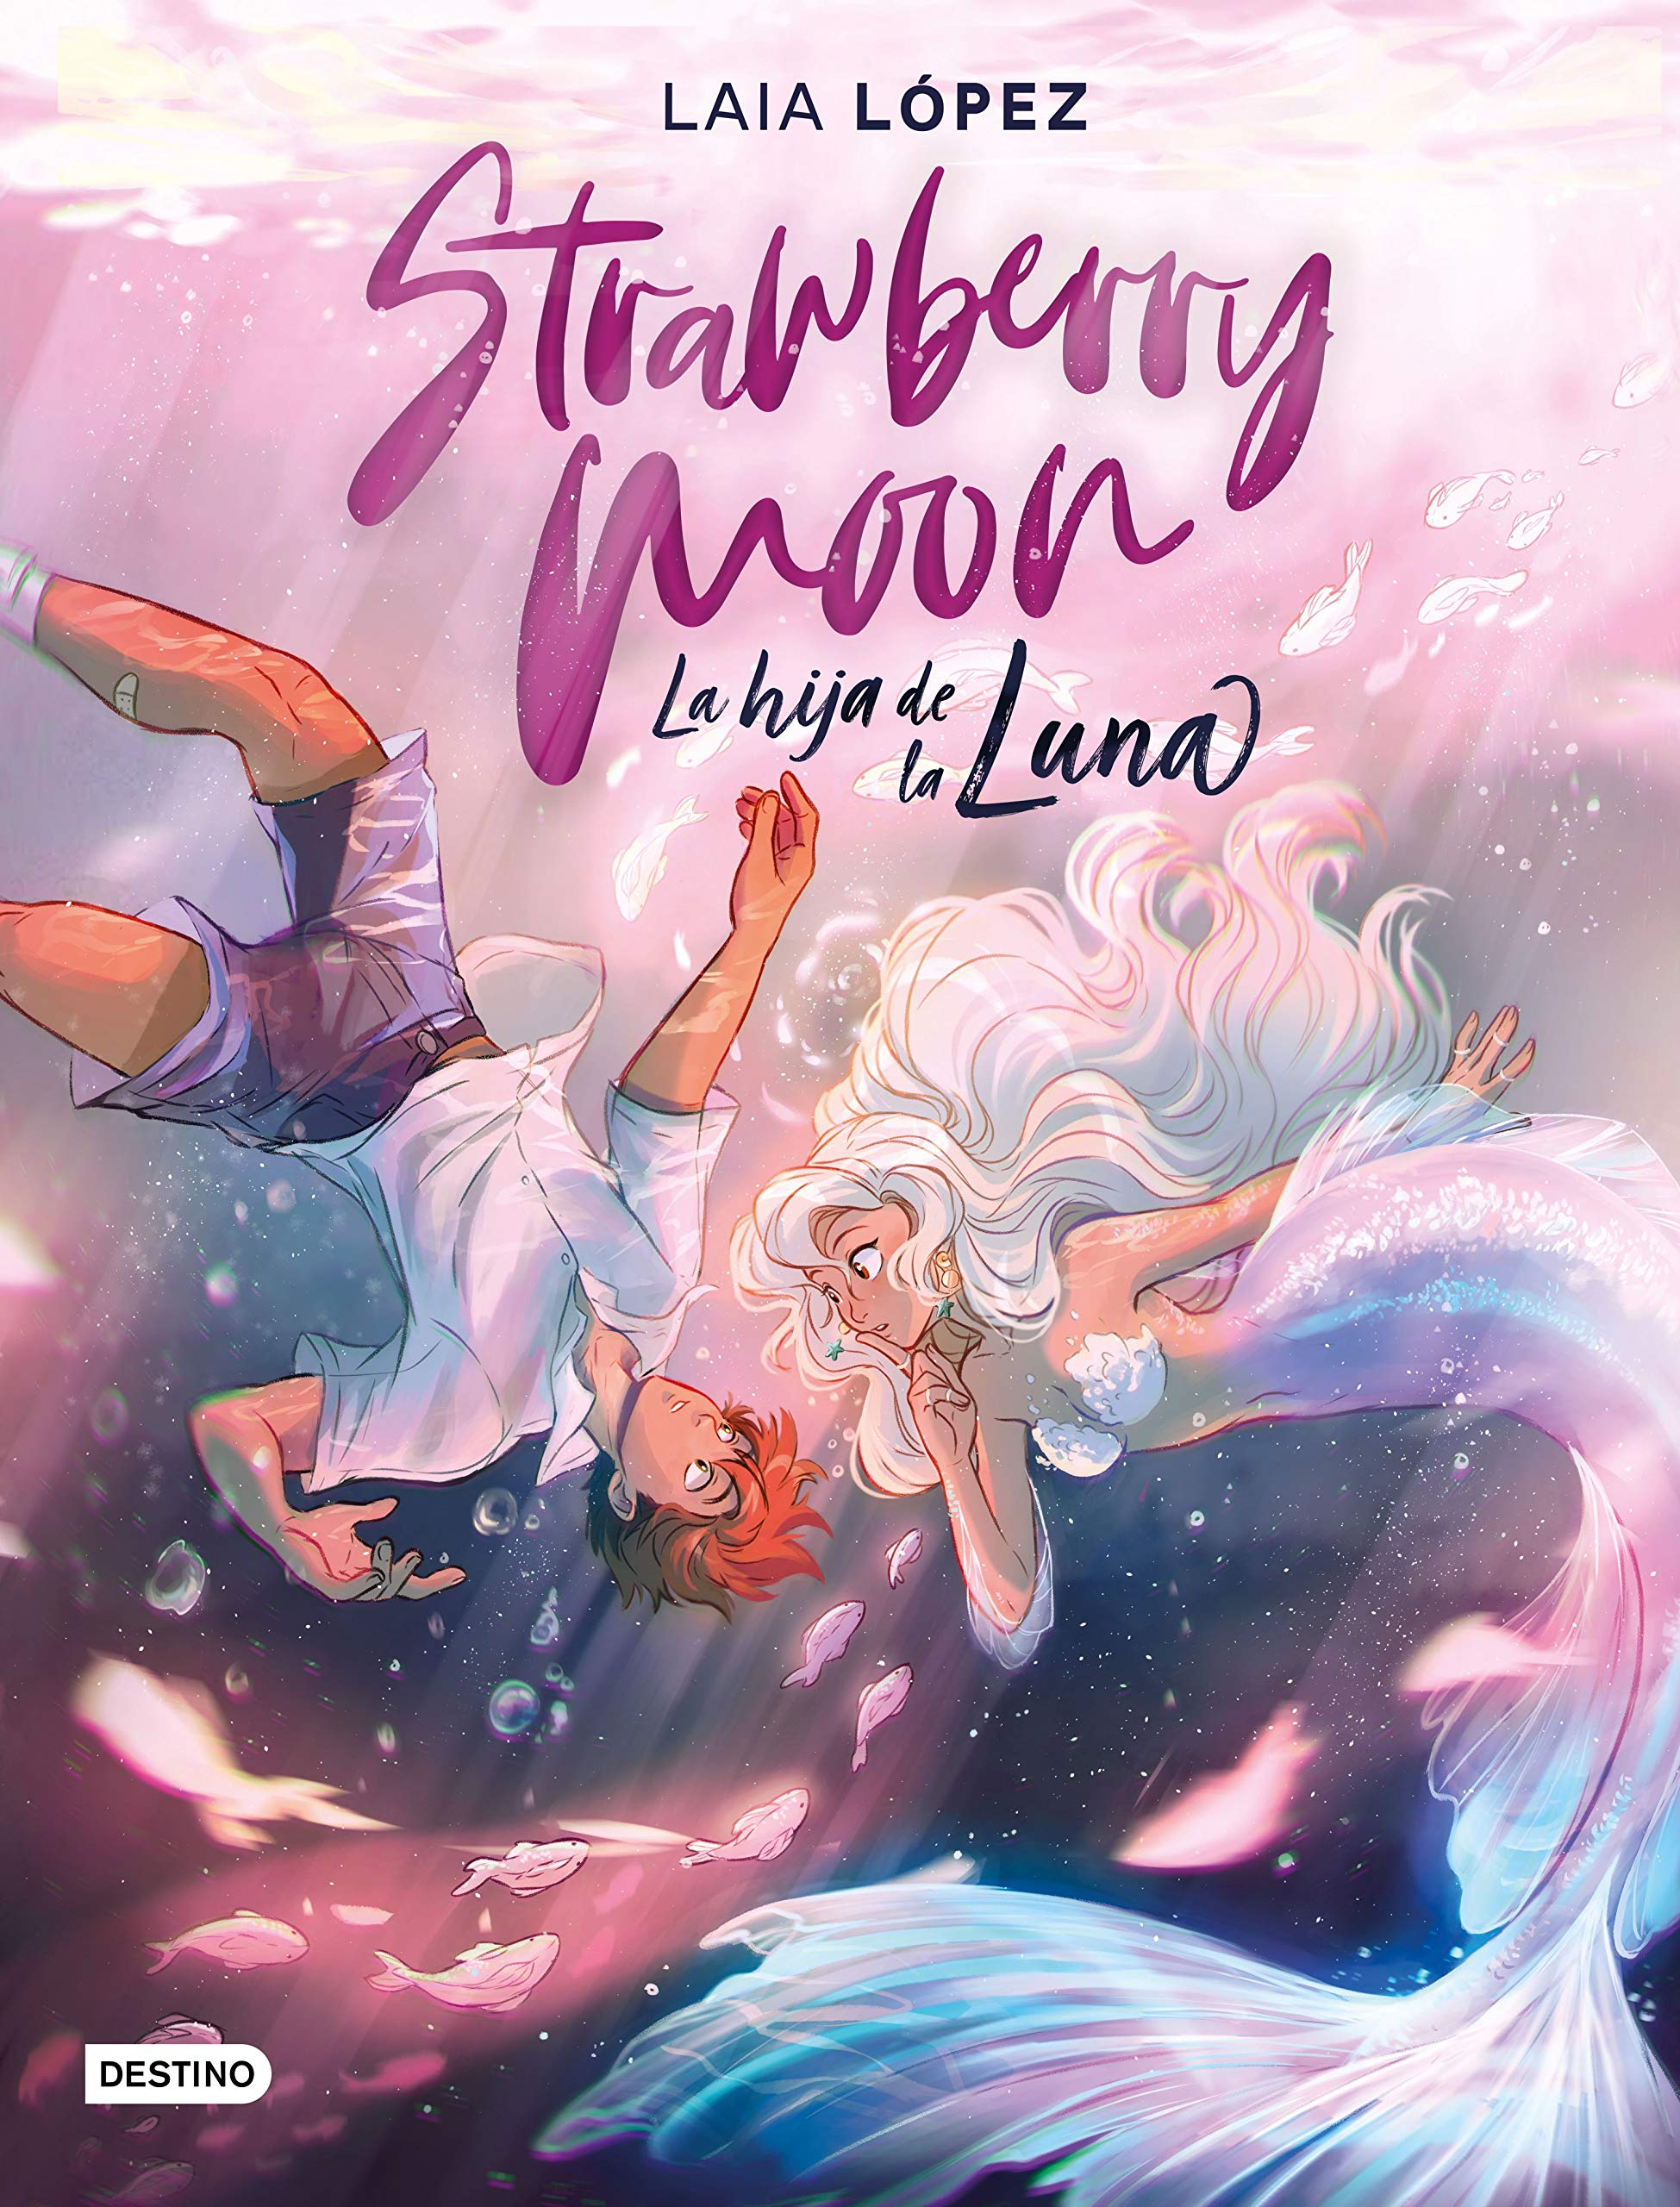 Strawberry Moon: La hija de la luna by Laia López